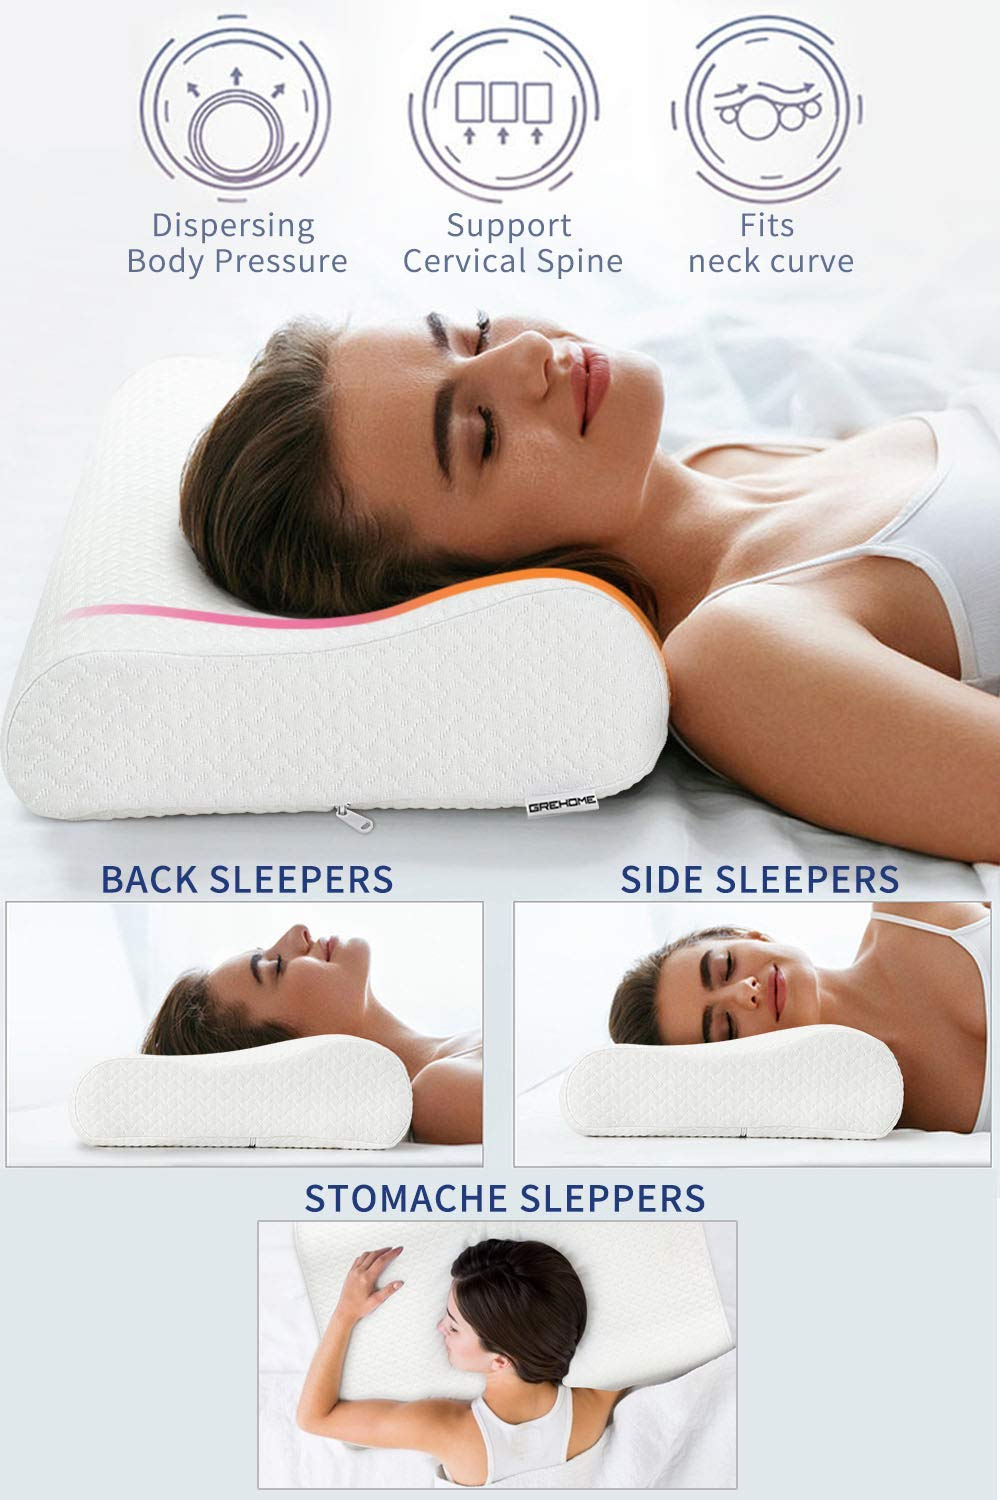 GREHOME Contour Memory Foam Pillow, Orthopedic Pillows for Neck Pain Ergonomic Cervical Pillow